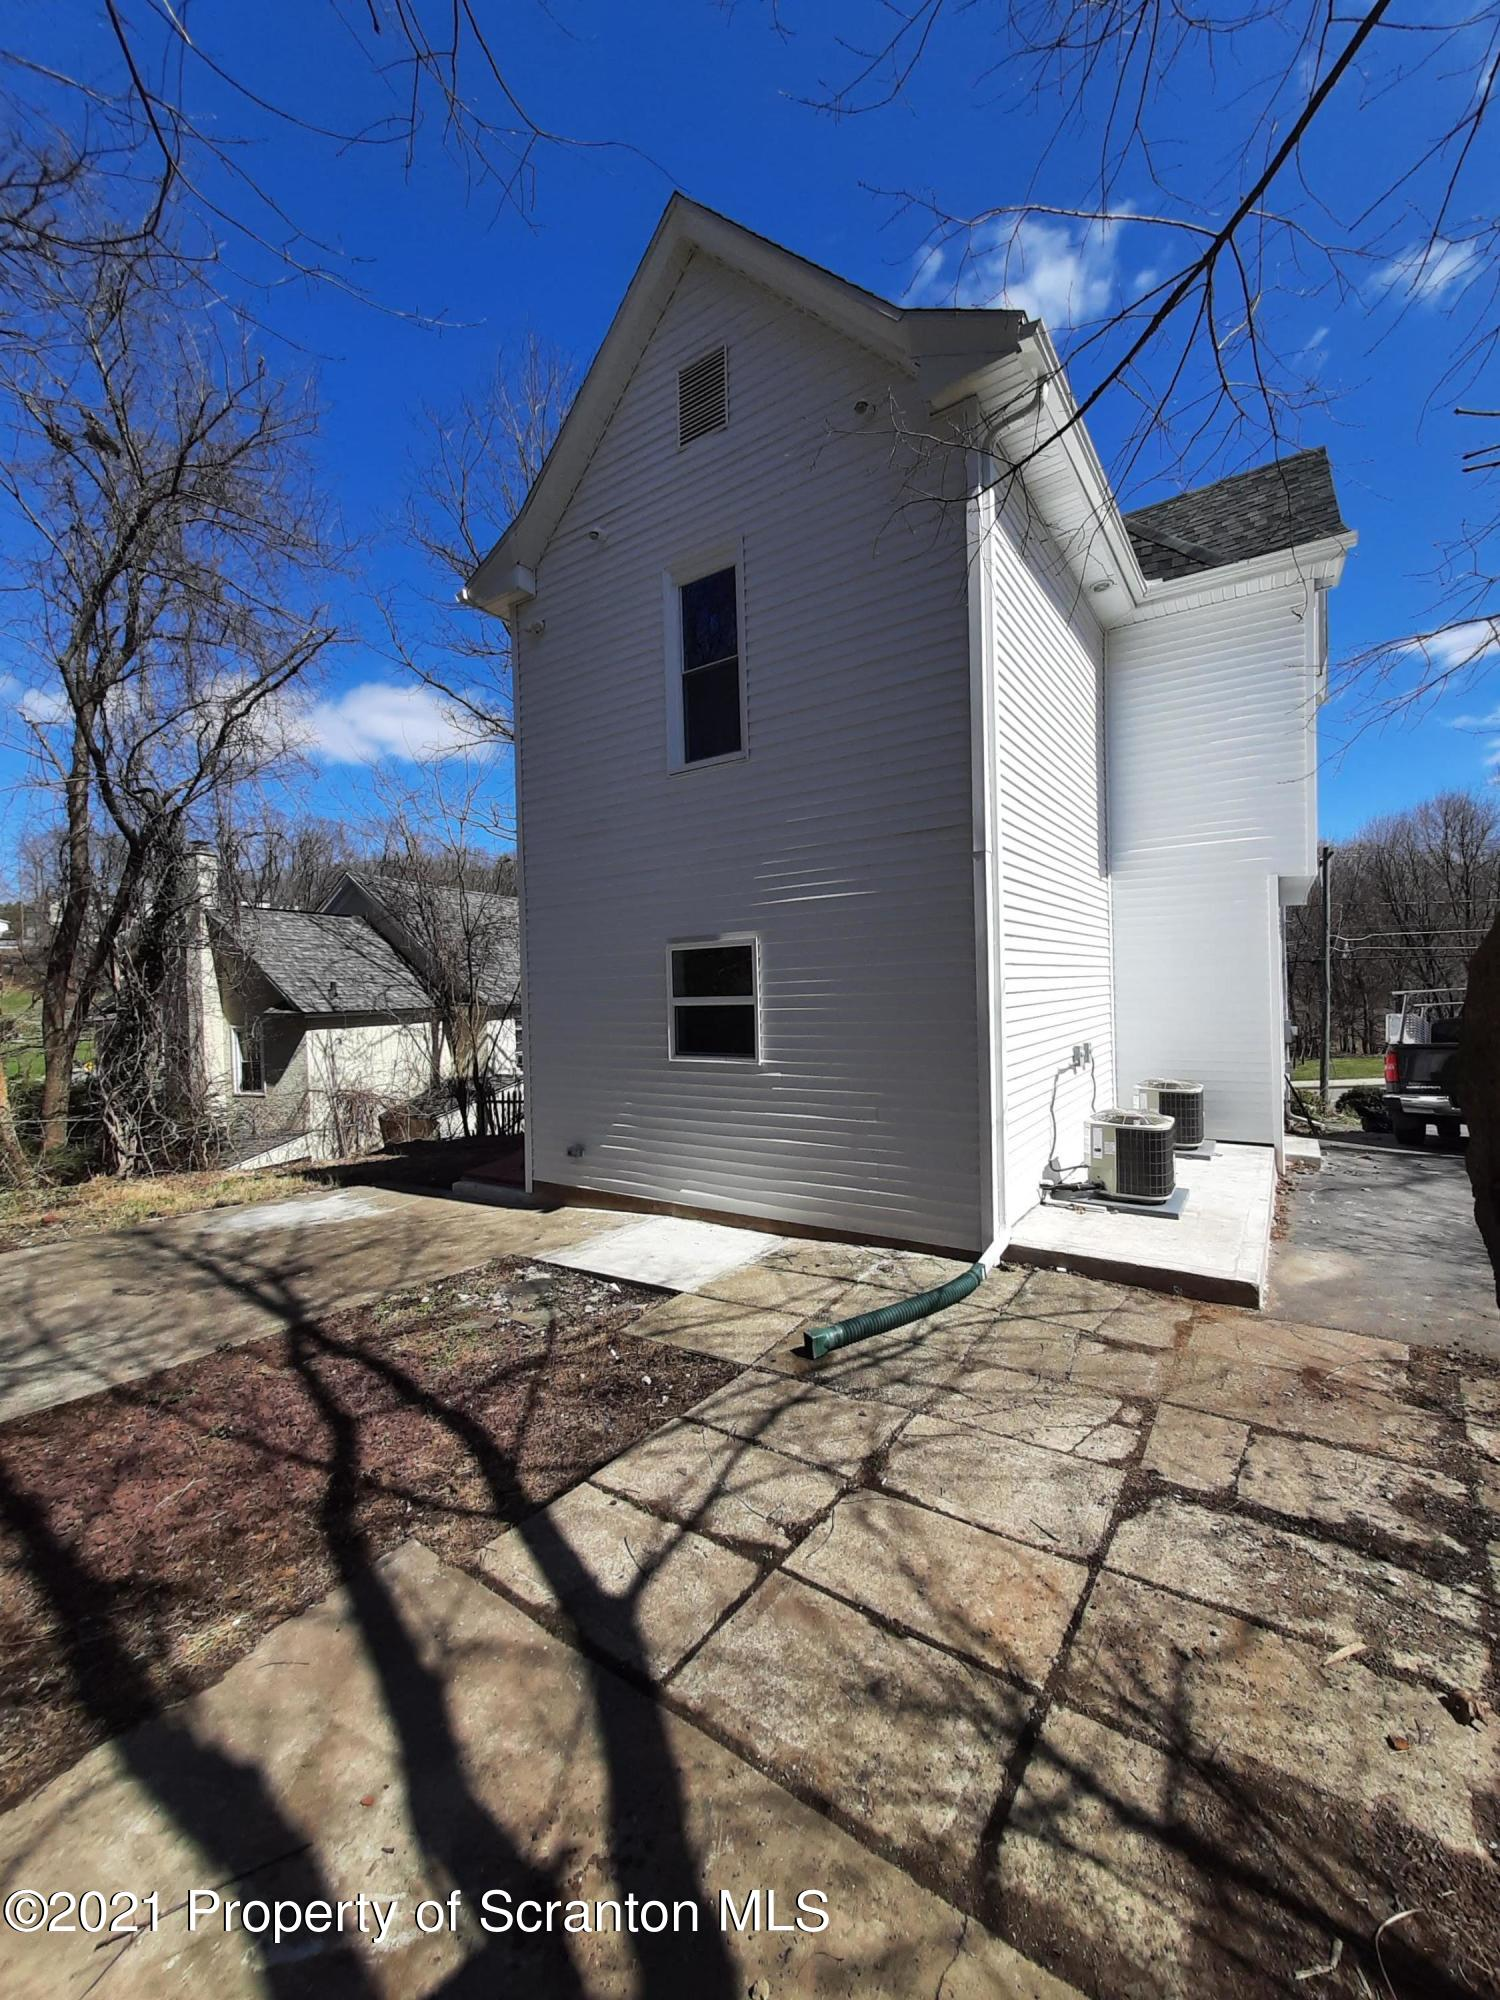 714 Valley Ave, Olyphant, Pennsylvania 18447, 3 Bedrooms Bedrooms, 7 Rooms Rooms,3 BathroomsBathrooms,Single Family,For Sale,Valley,21-1200